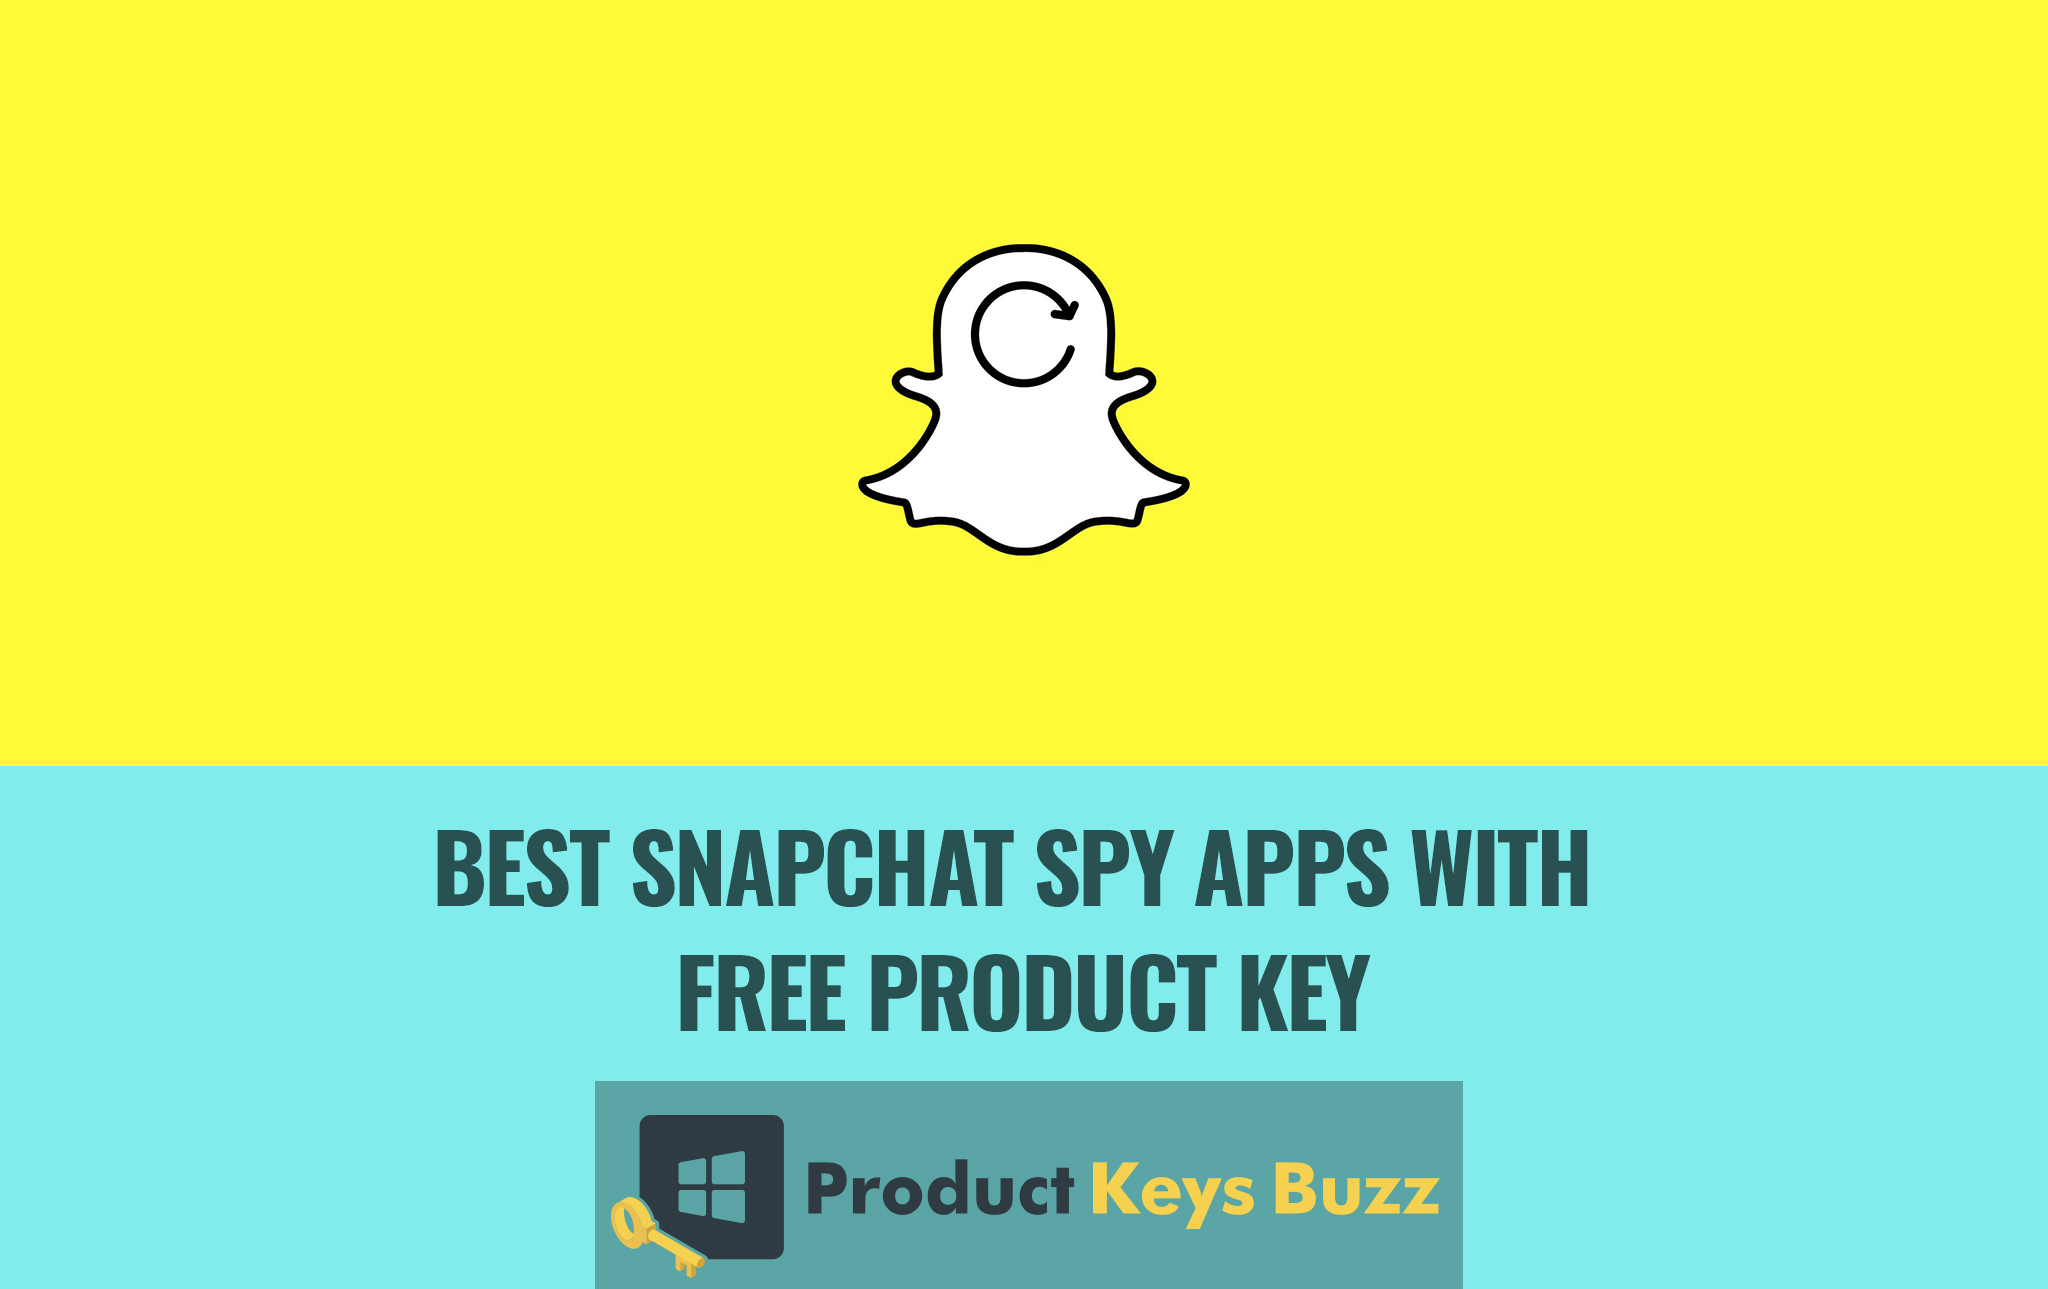 Best Snapchat Spy Apps with free product key